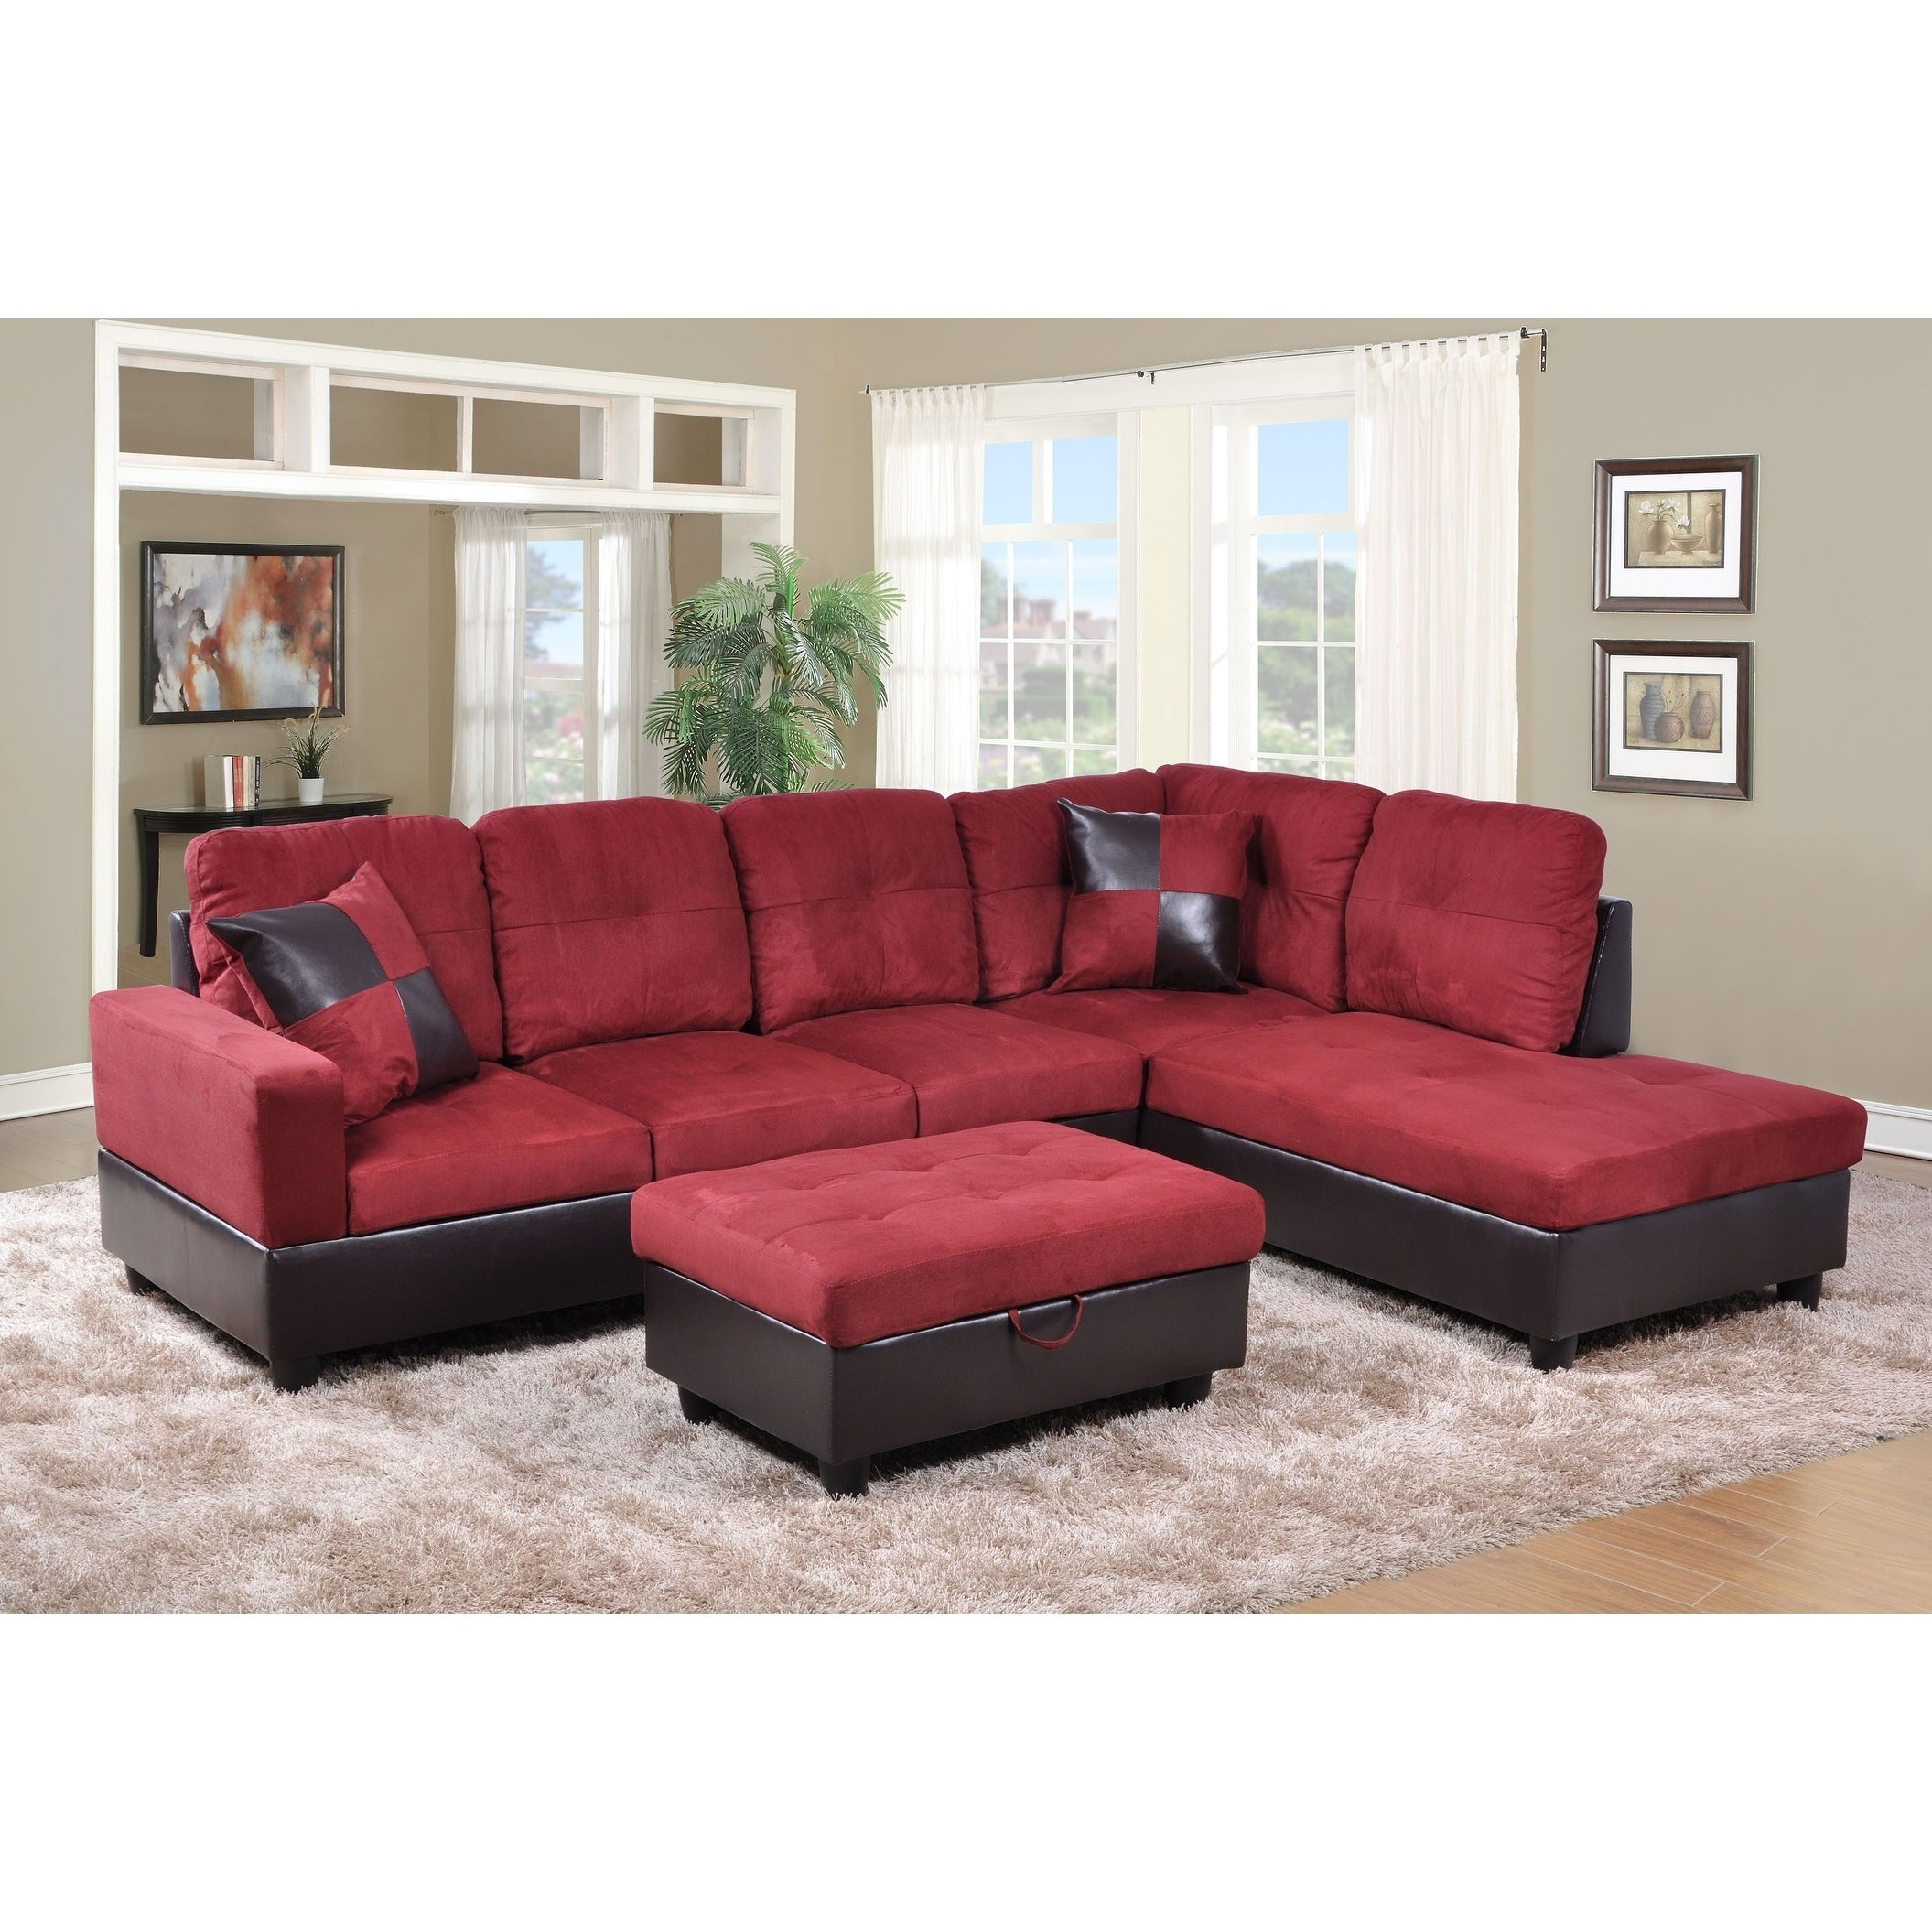 Golden Coast Furniture 3 Piece Microfiber Leather Sofa Sectional With Ottoman Storage On Free Shipping Today 21930338